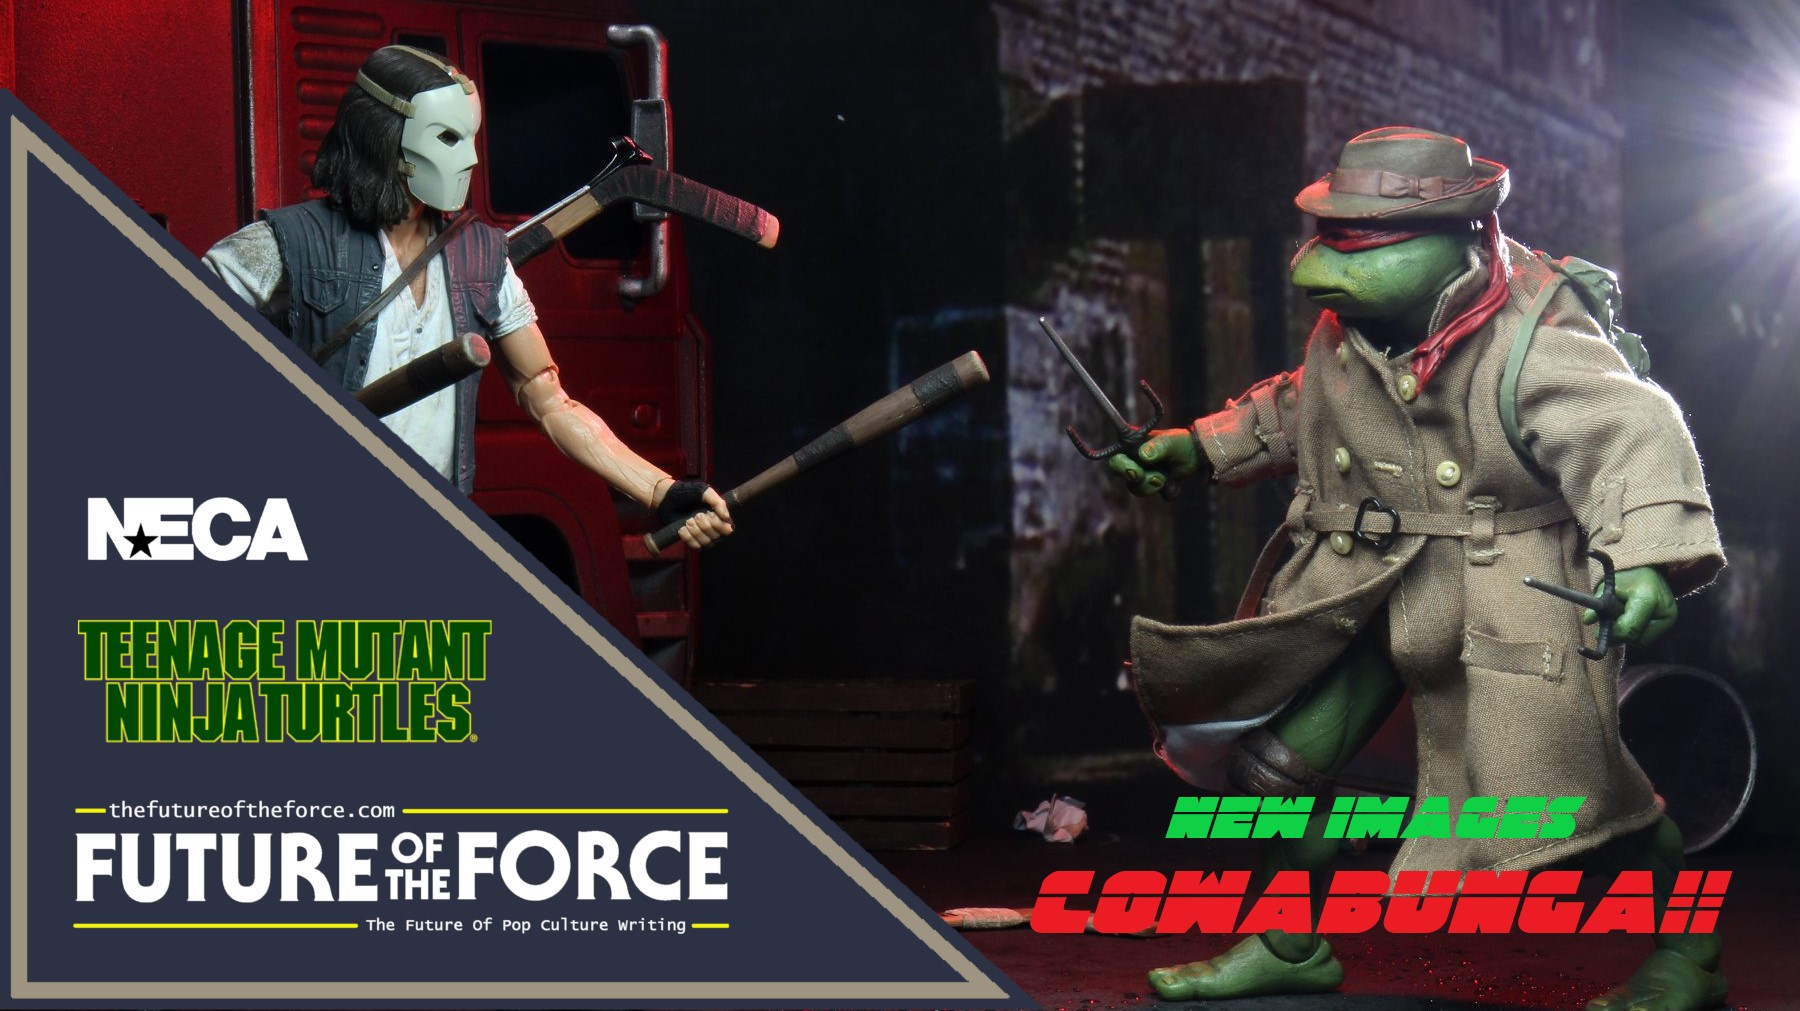 Updated New Images Casey Jones And Raphael Trench Coat Teenage Mutant Ninja Turtles 1990 Movie Neca Future Of The Force